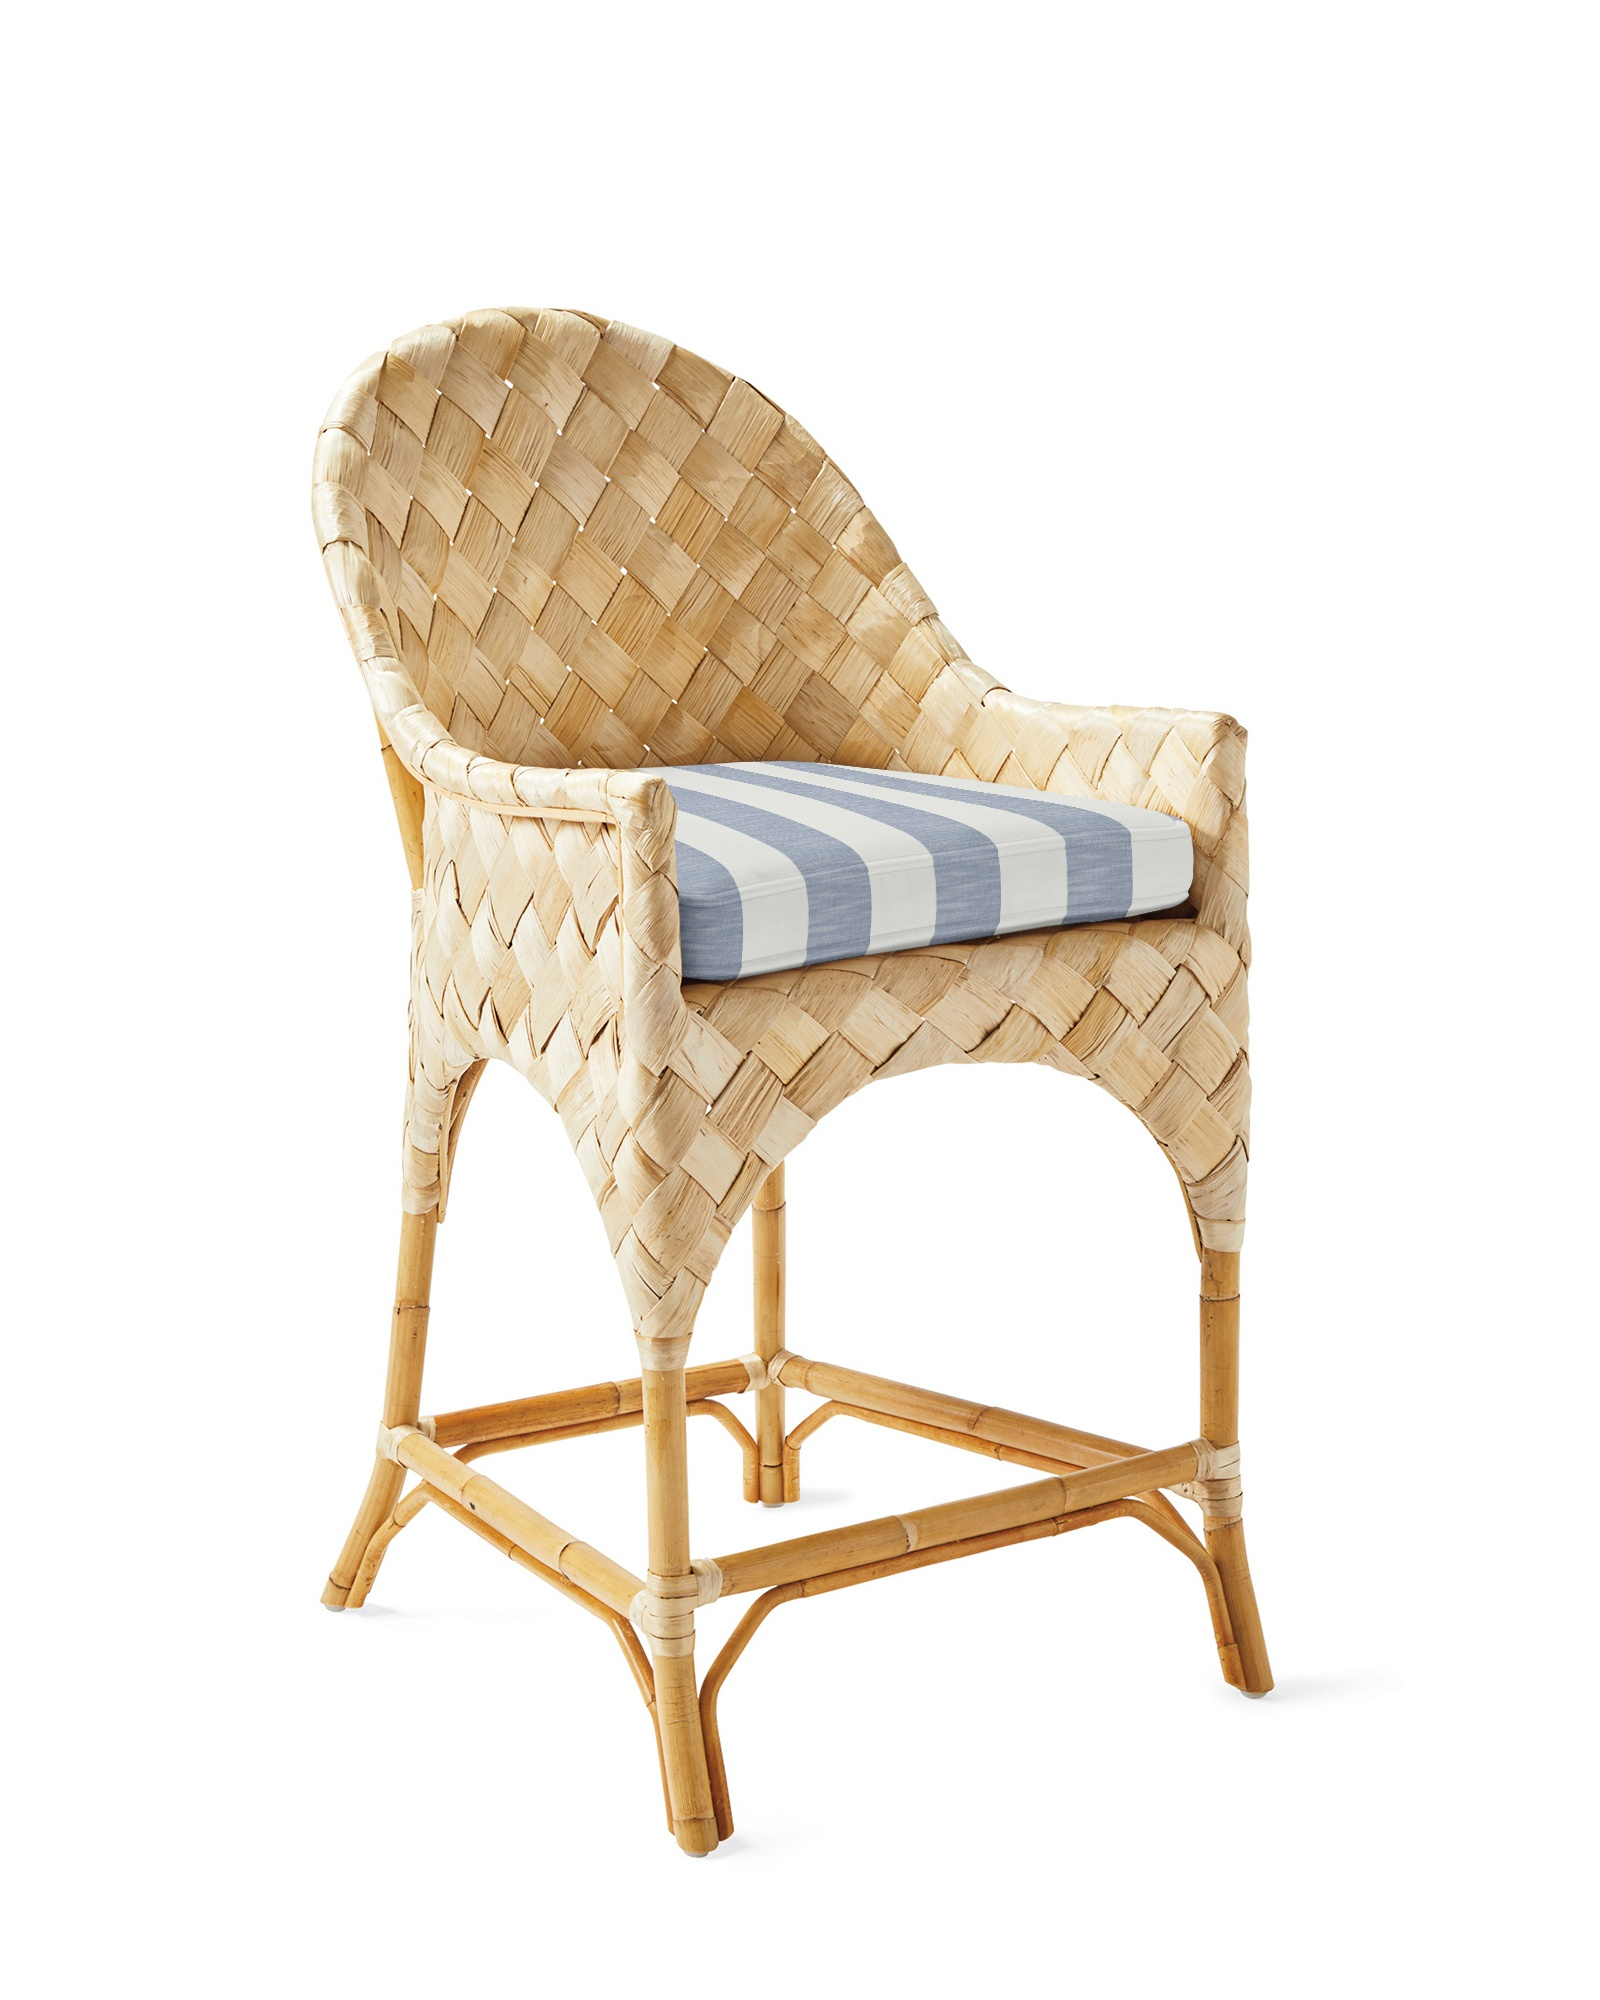 add a nod to island living with these swoon worthy  banana leaf and rattan stools ! 20% off ends tonight!